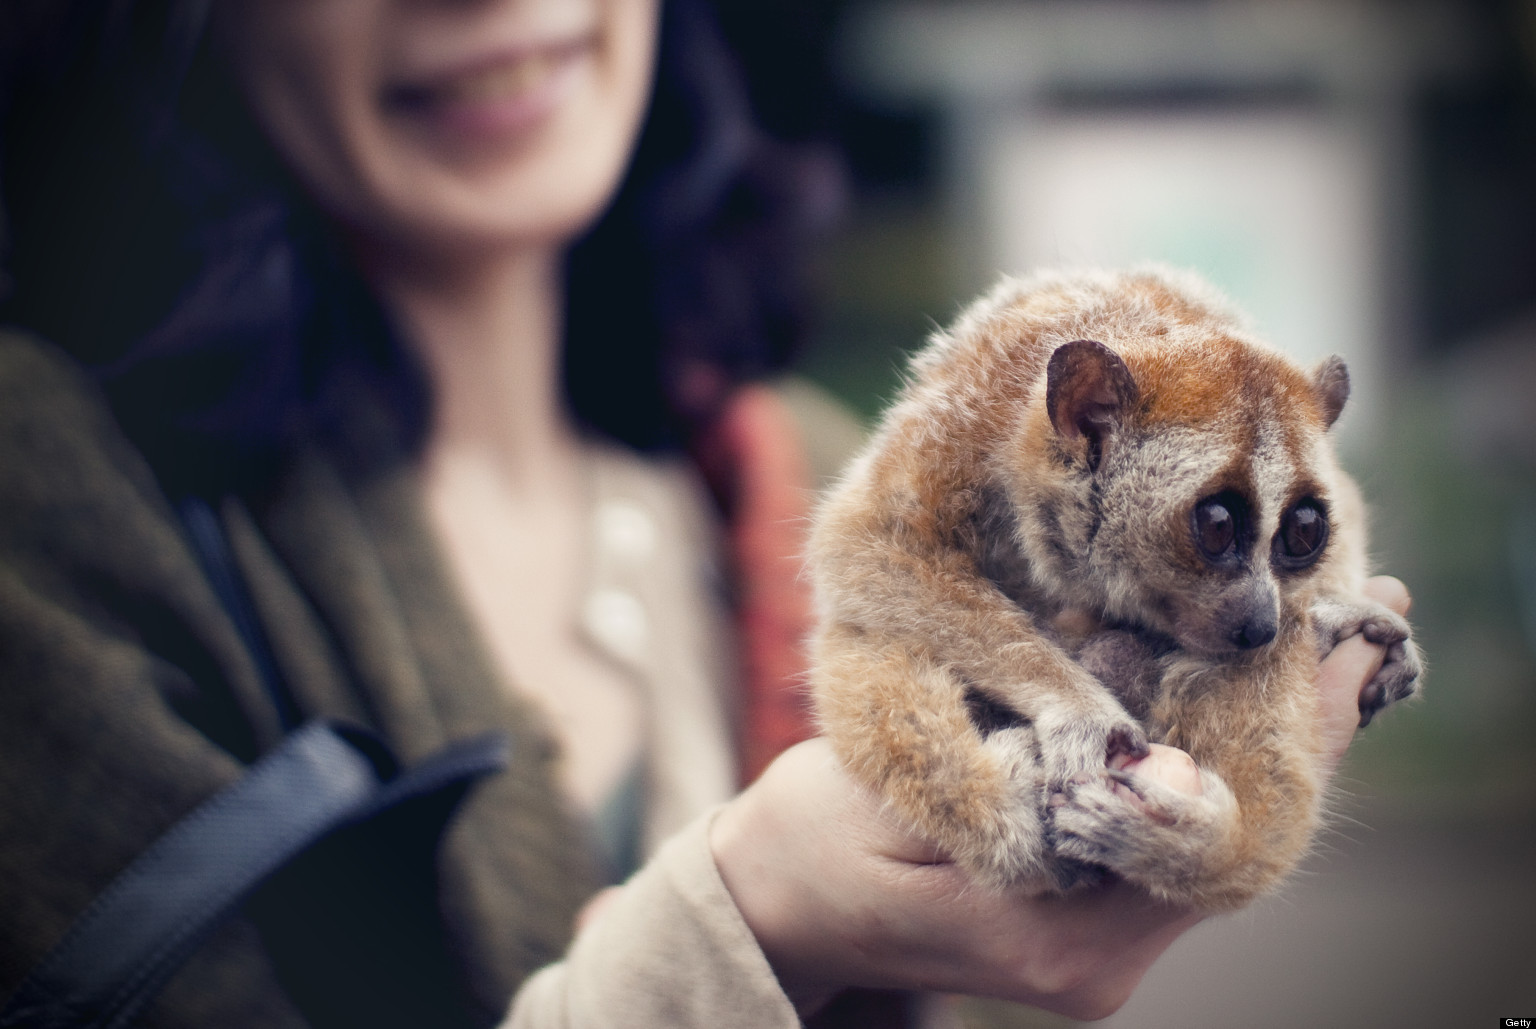 wild animals as pets Don't take wild animals in as pets heather davis many people in the world get pets every day, but why blame them there's nothing wrong with having a friend of another species.